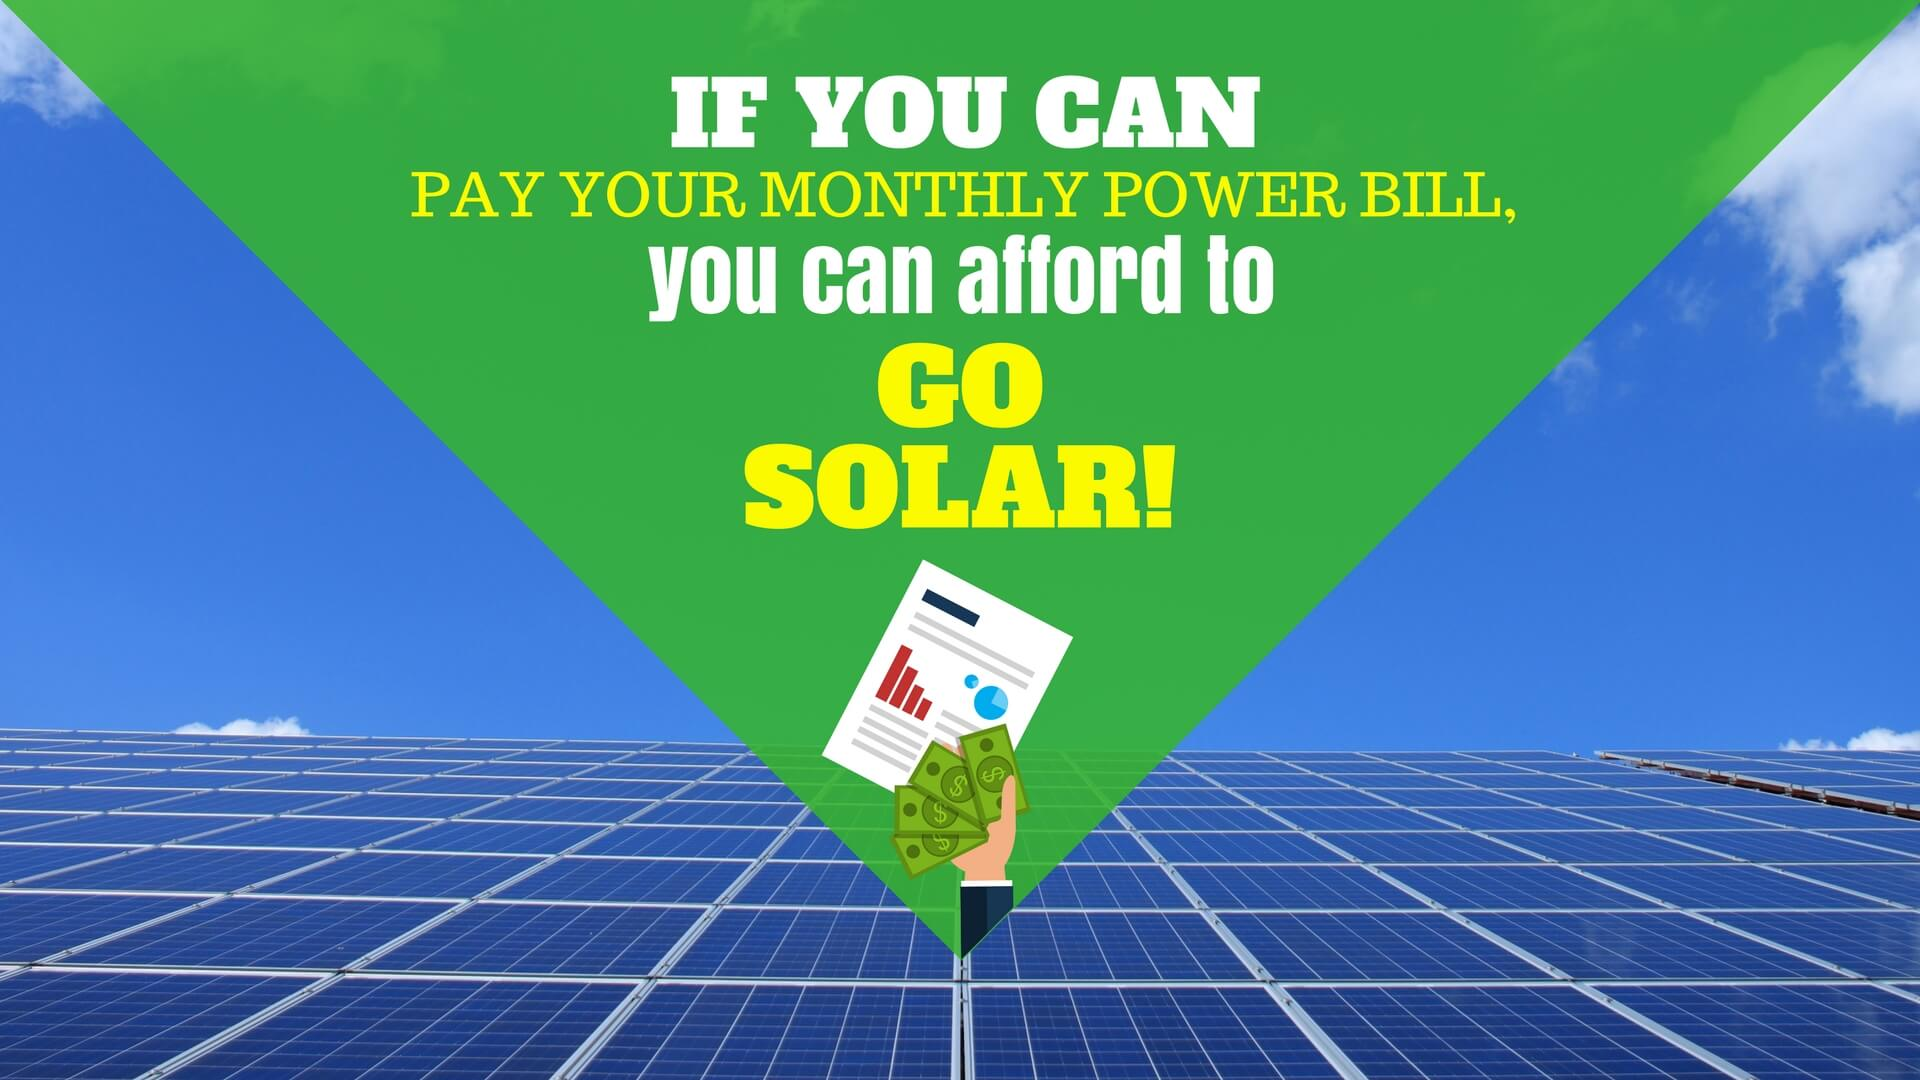 If you can pay your monthly power bill, you can afford to install solar on your home or business.